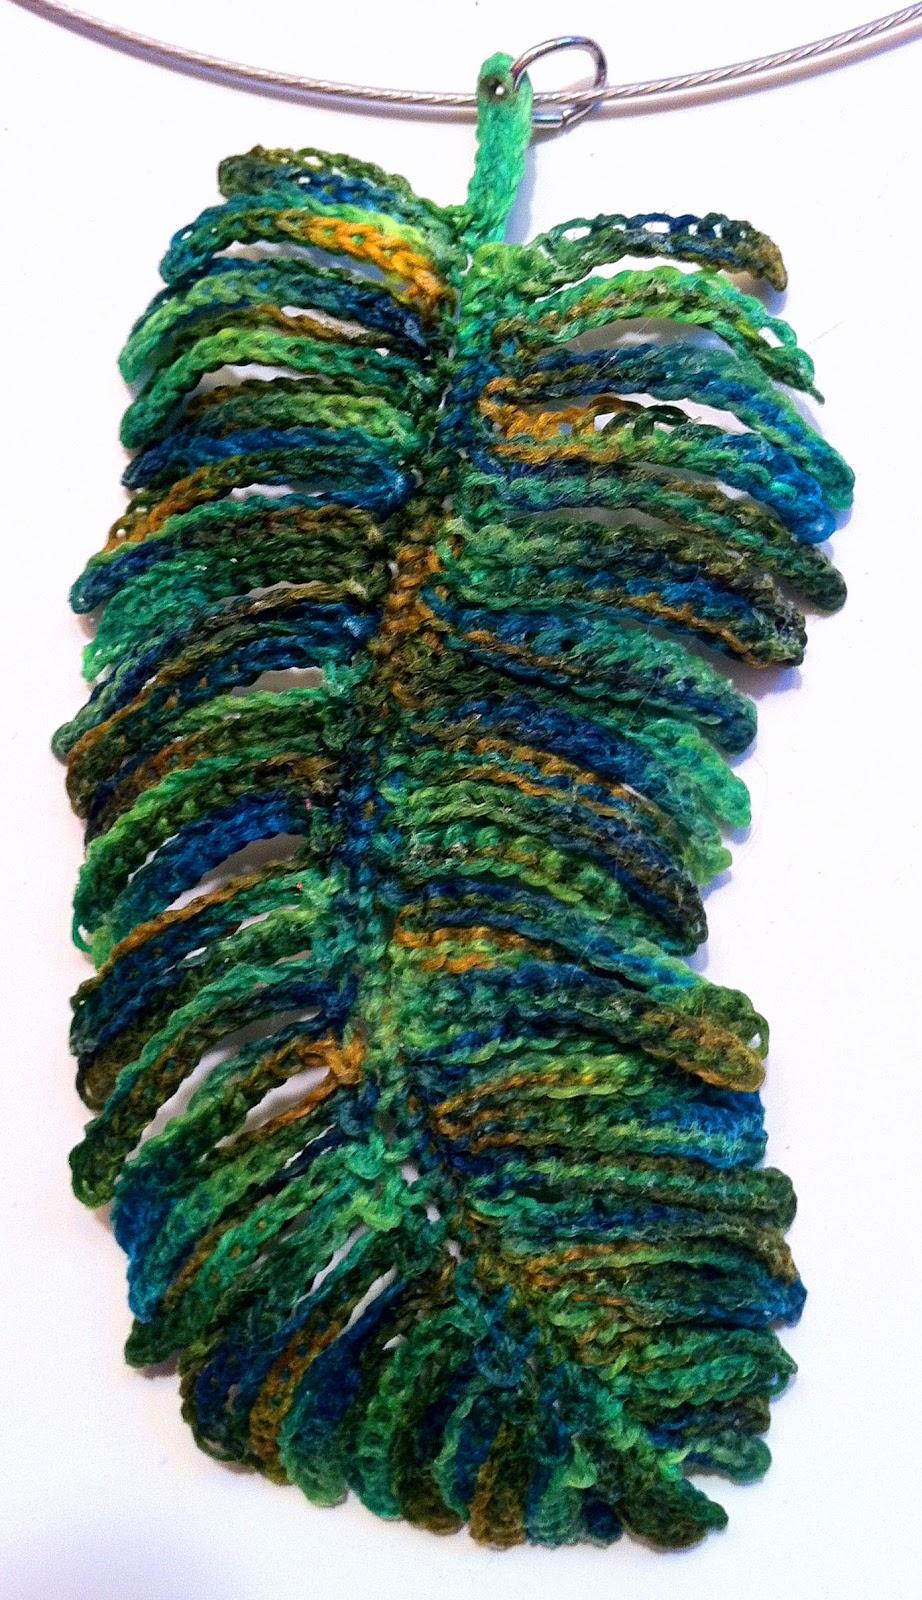 Crochet Pattern For Peacock Feather : Regina Rioux: Crocheted Feather Pendants